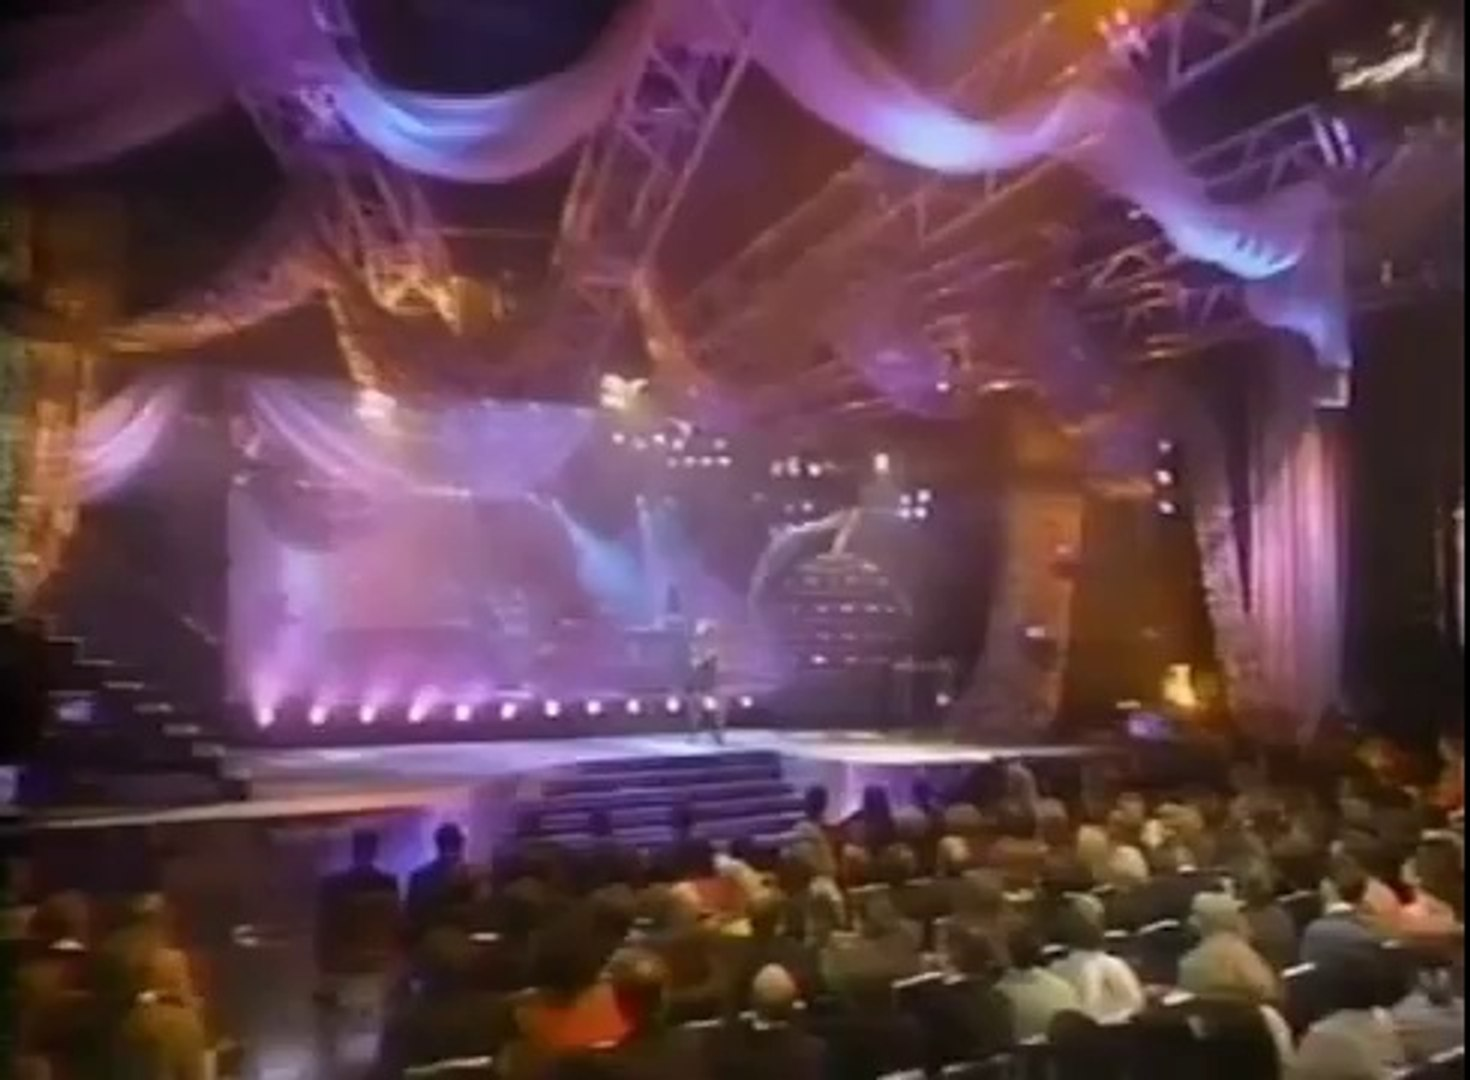 TINA TURNER - I Don't Wanna Fight (1993) (1993 World Music Awards)